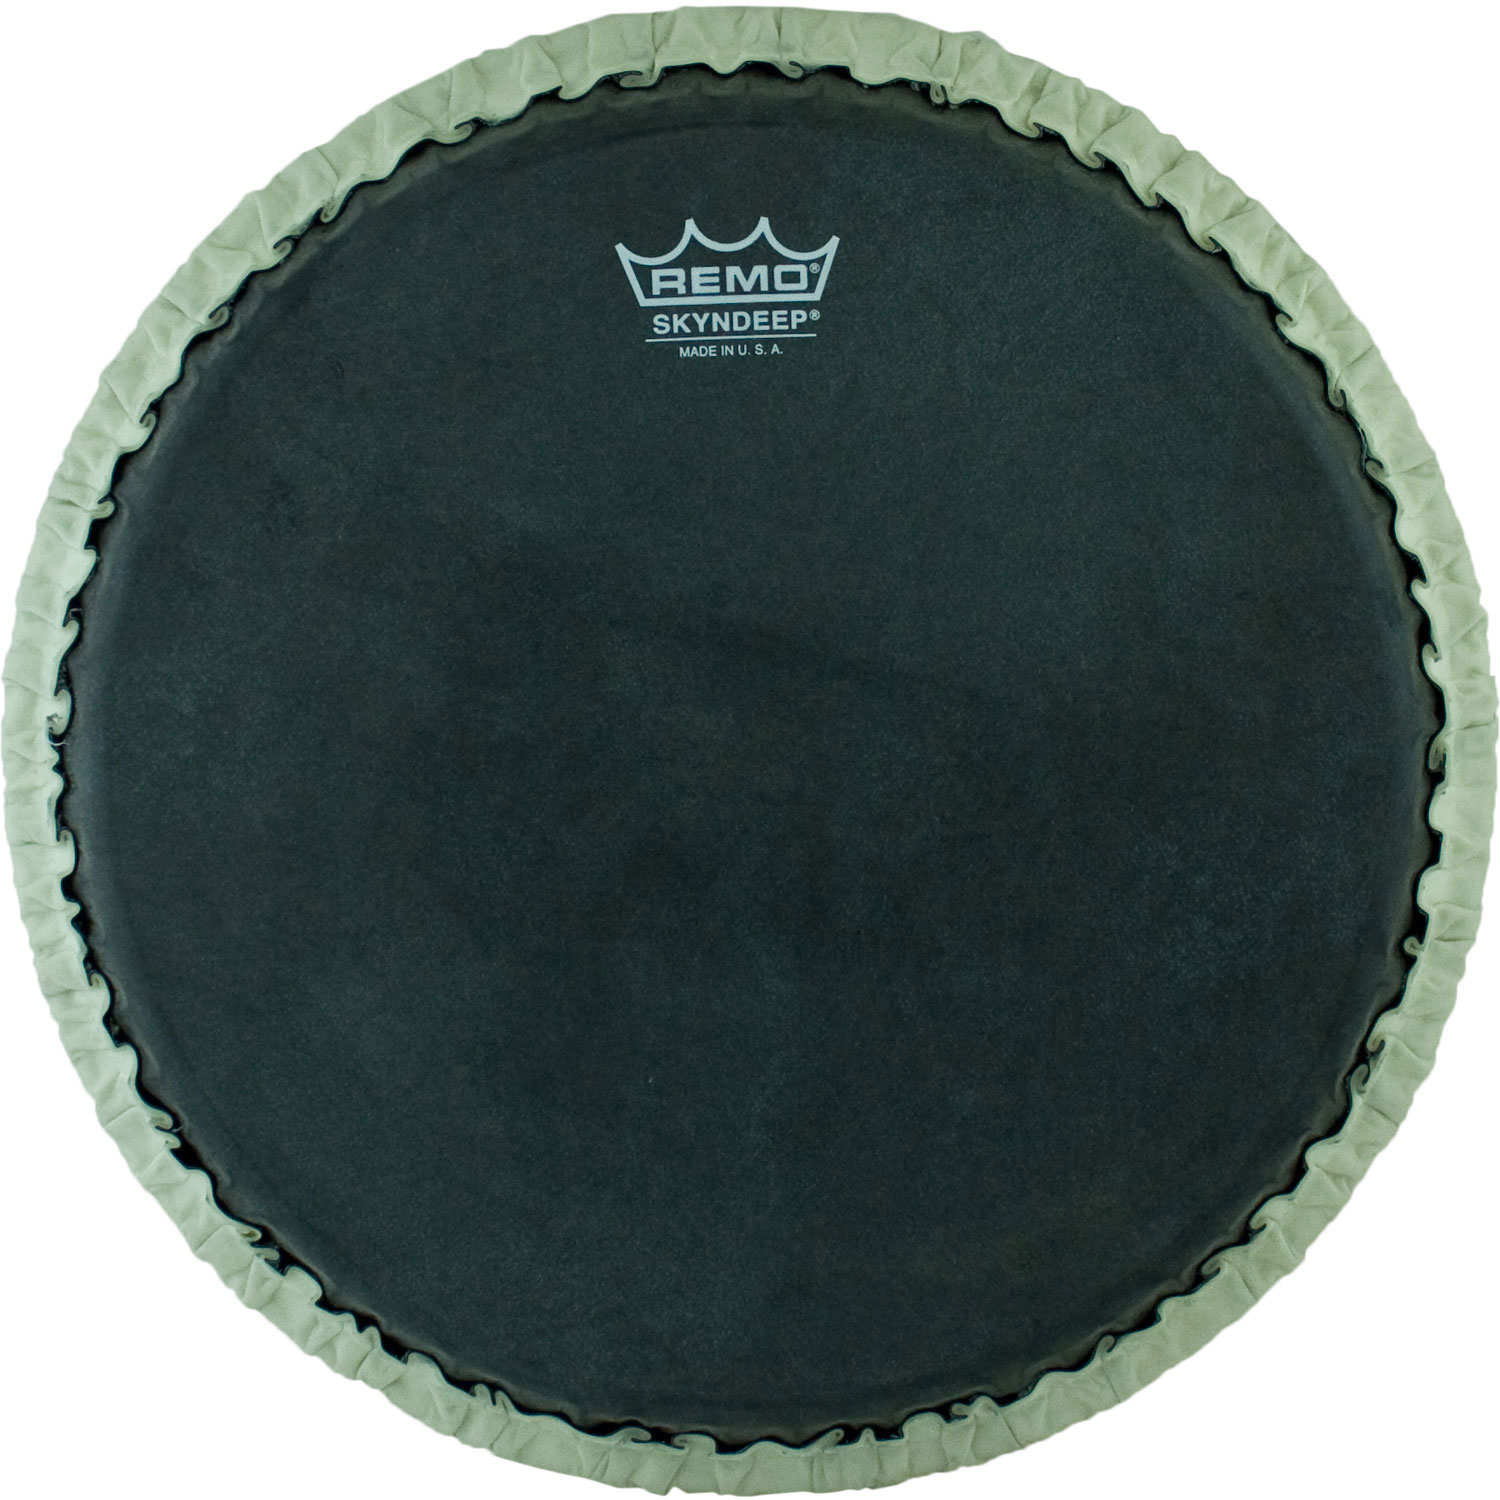 """Remo 11.06"""" Tucked Skyndeep Conga Drum Head with Black Calfskin Graphic"""